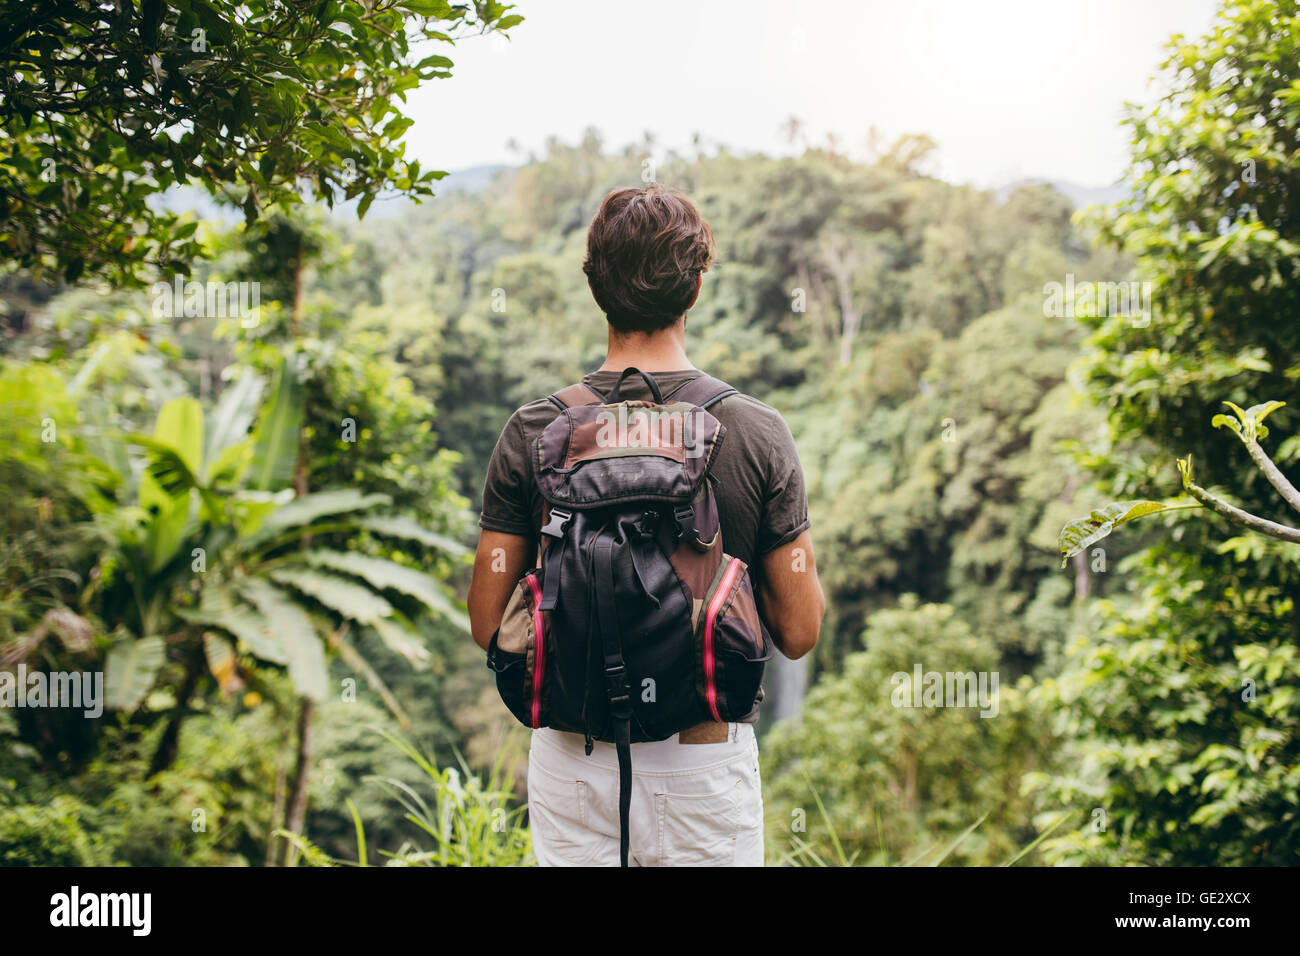 Rear view of man looking at waterfall. Male hiker standing in forest and viewing waterfall. - Stock Image